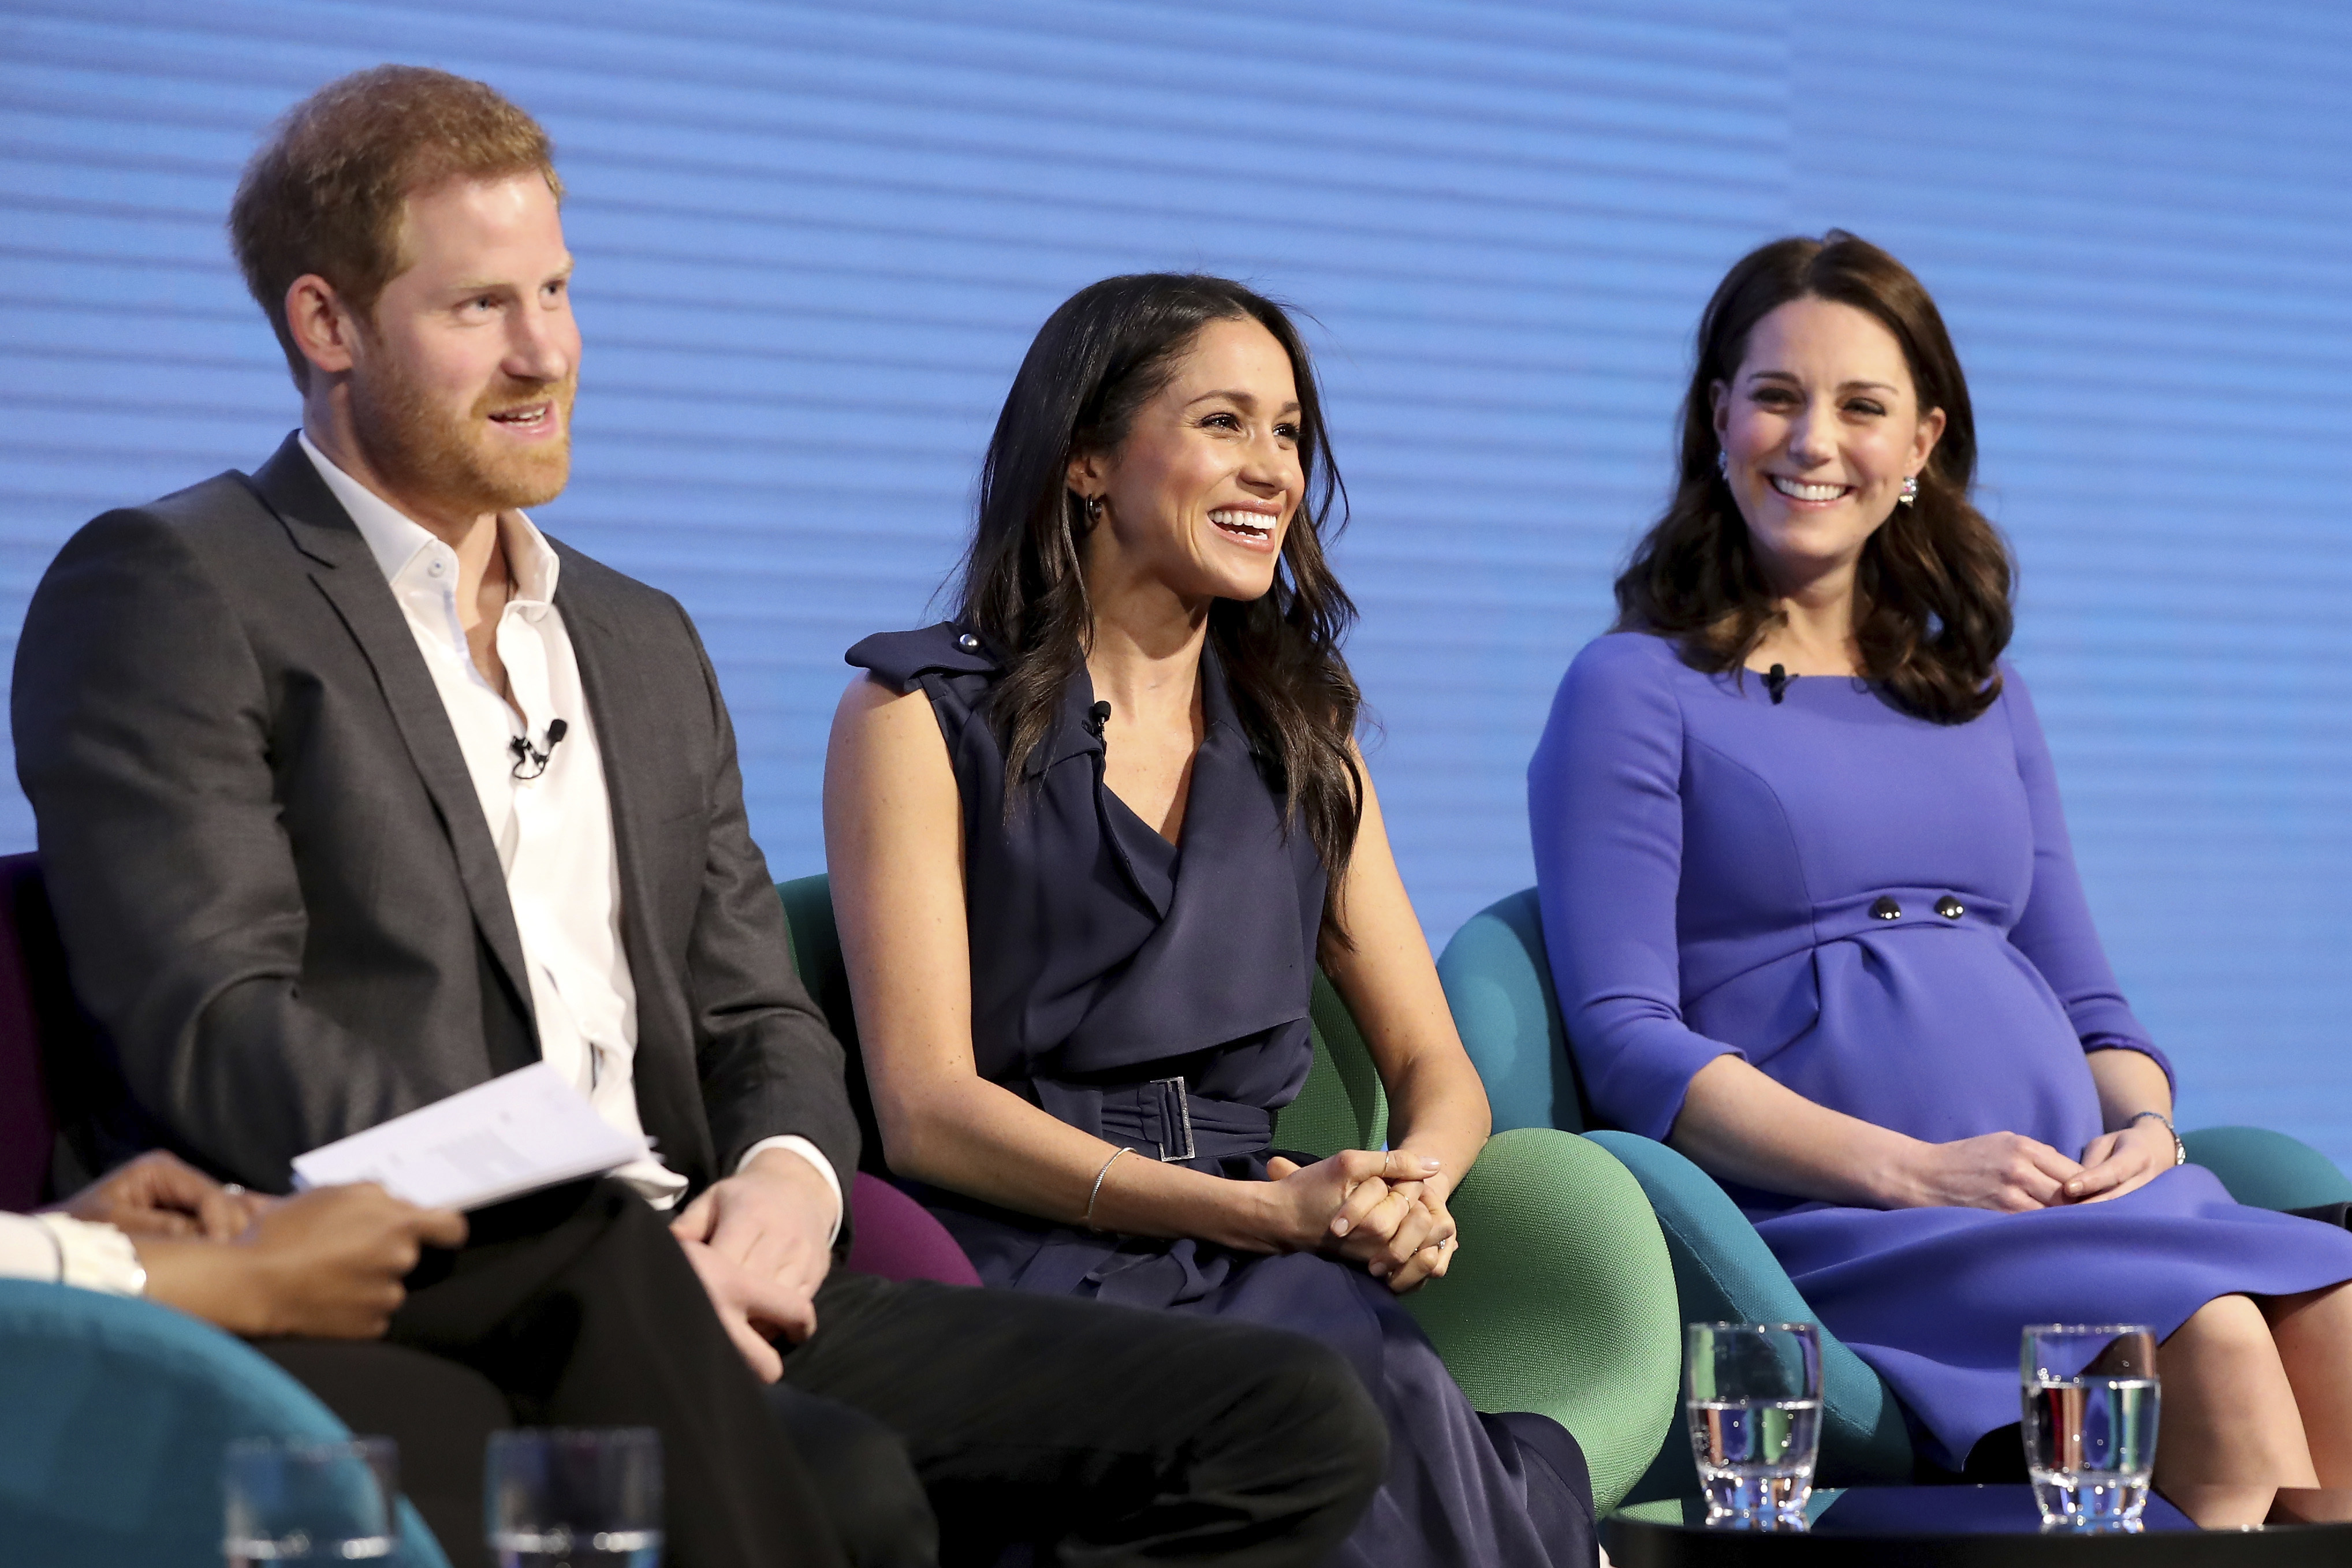 "<div class=""meta image-caption""><div class=""origin-logo origin-image none""><span>none</span></div><span class=""caption-text"">Britain's Kate, Duchess of Cambridge, right, with Prince Harry and his fiancee Meghan Markle attend the first annual Royal Foundation Forum in London, Wednesday Feb. 28, 2018. (Chris Jackson/Pool via AP)</span></div>"